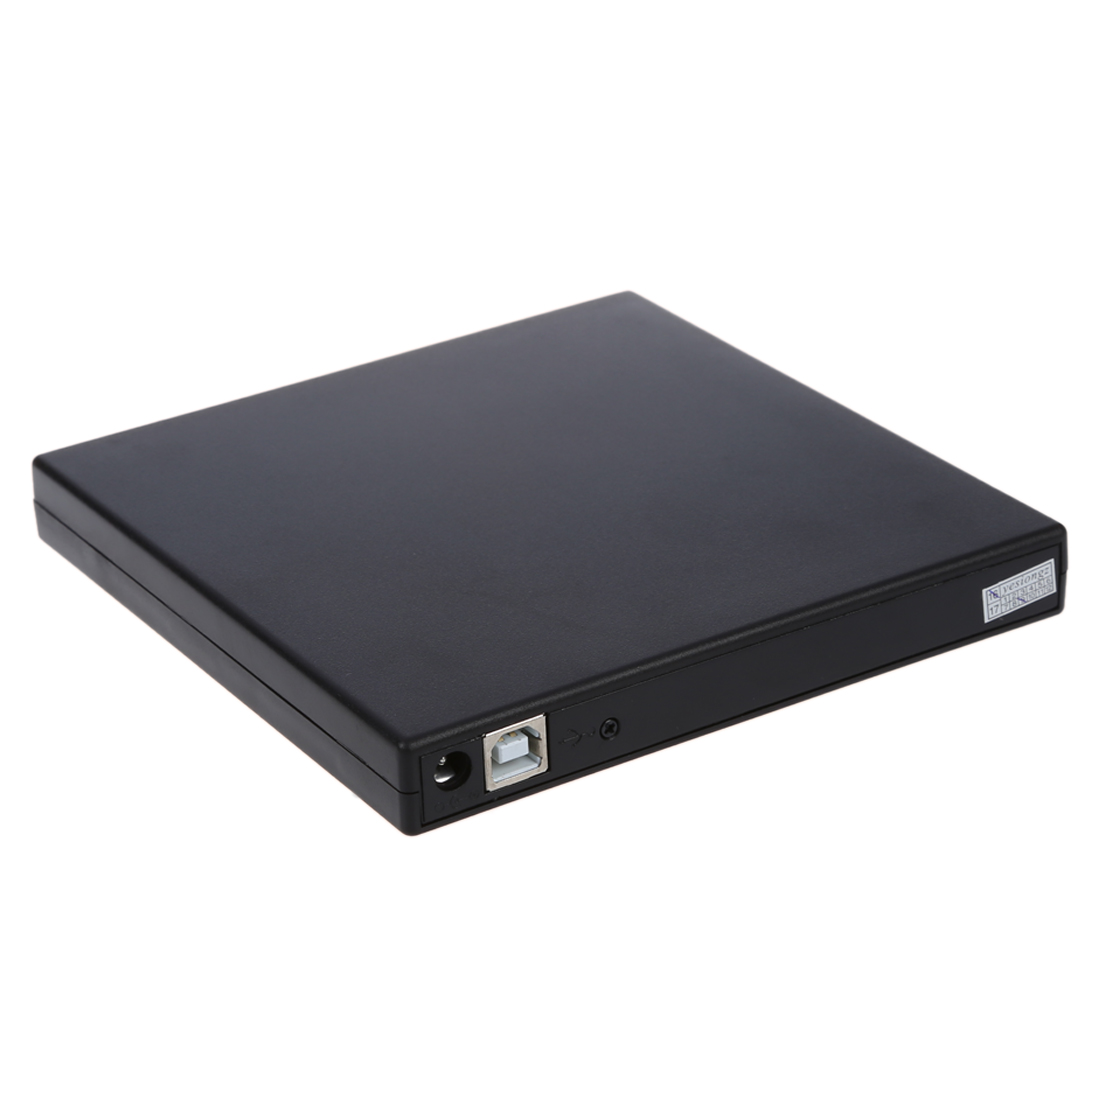 USB External Blu-ray BD-R BD-ROM Combo DVD RW Burner Drive Black usb ide laptop notebook cd dvd rw burner rom drive external case enclosure no17